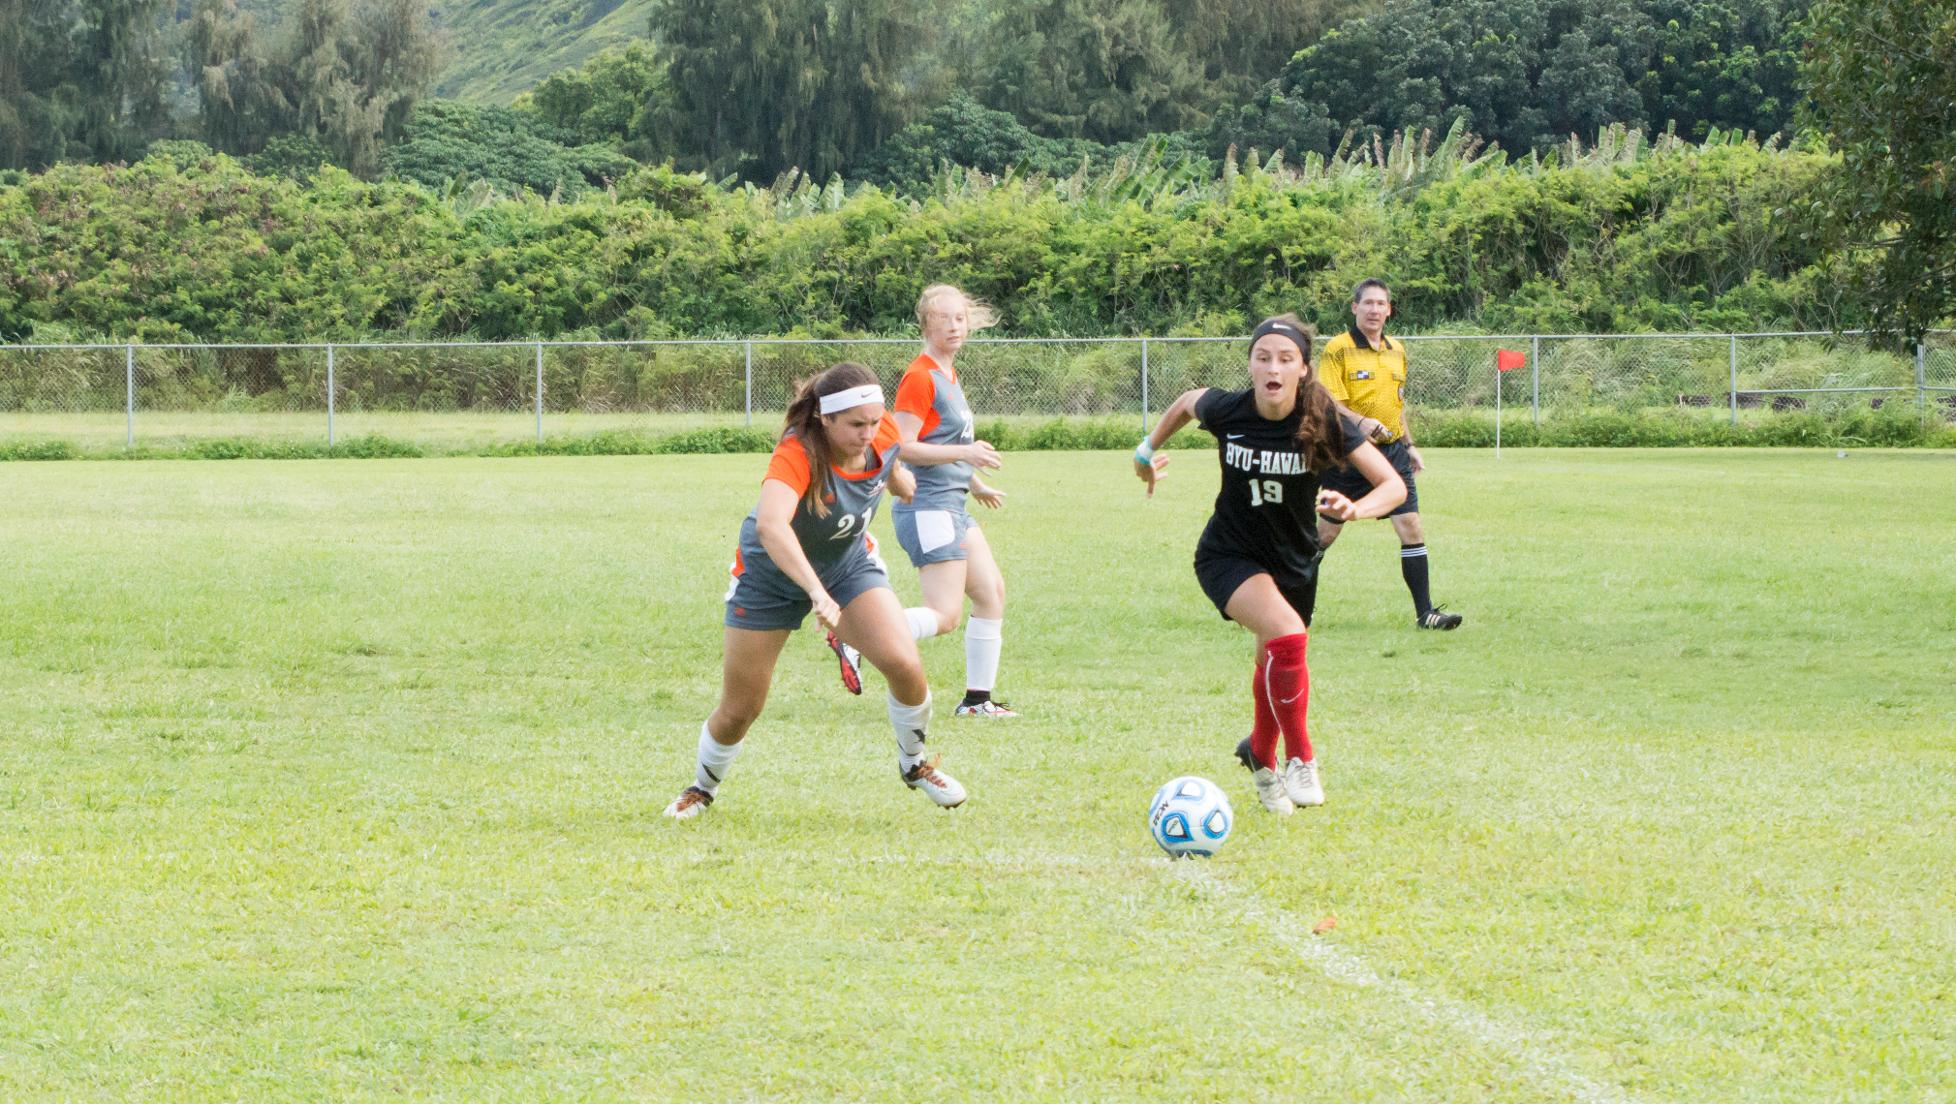 Season outlook for Seasider women's soccer